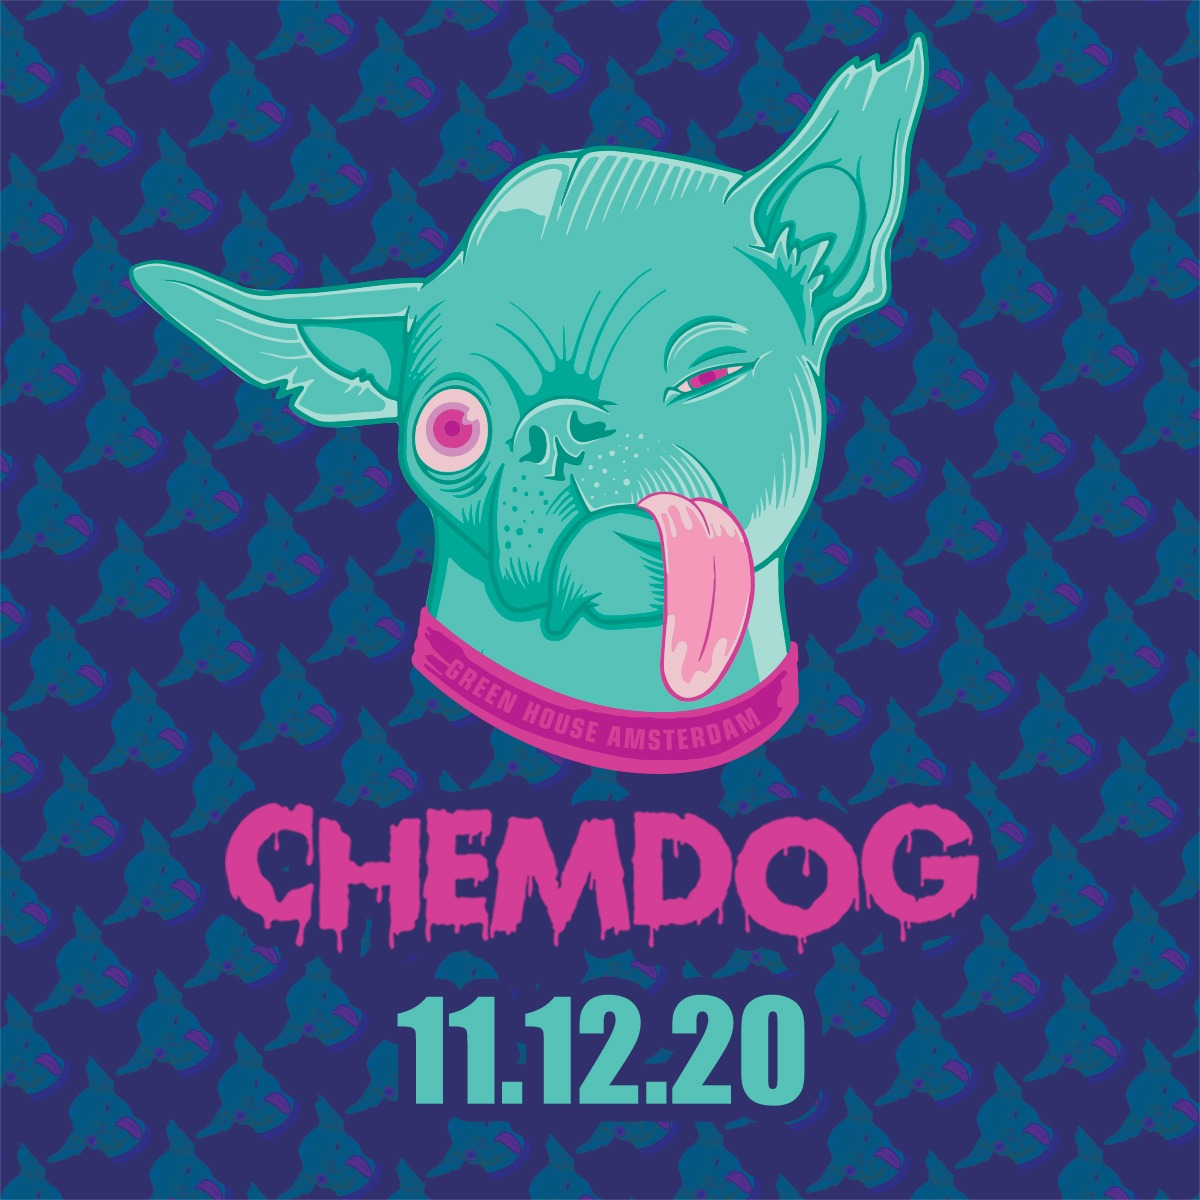 chemdog is coming back